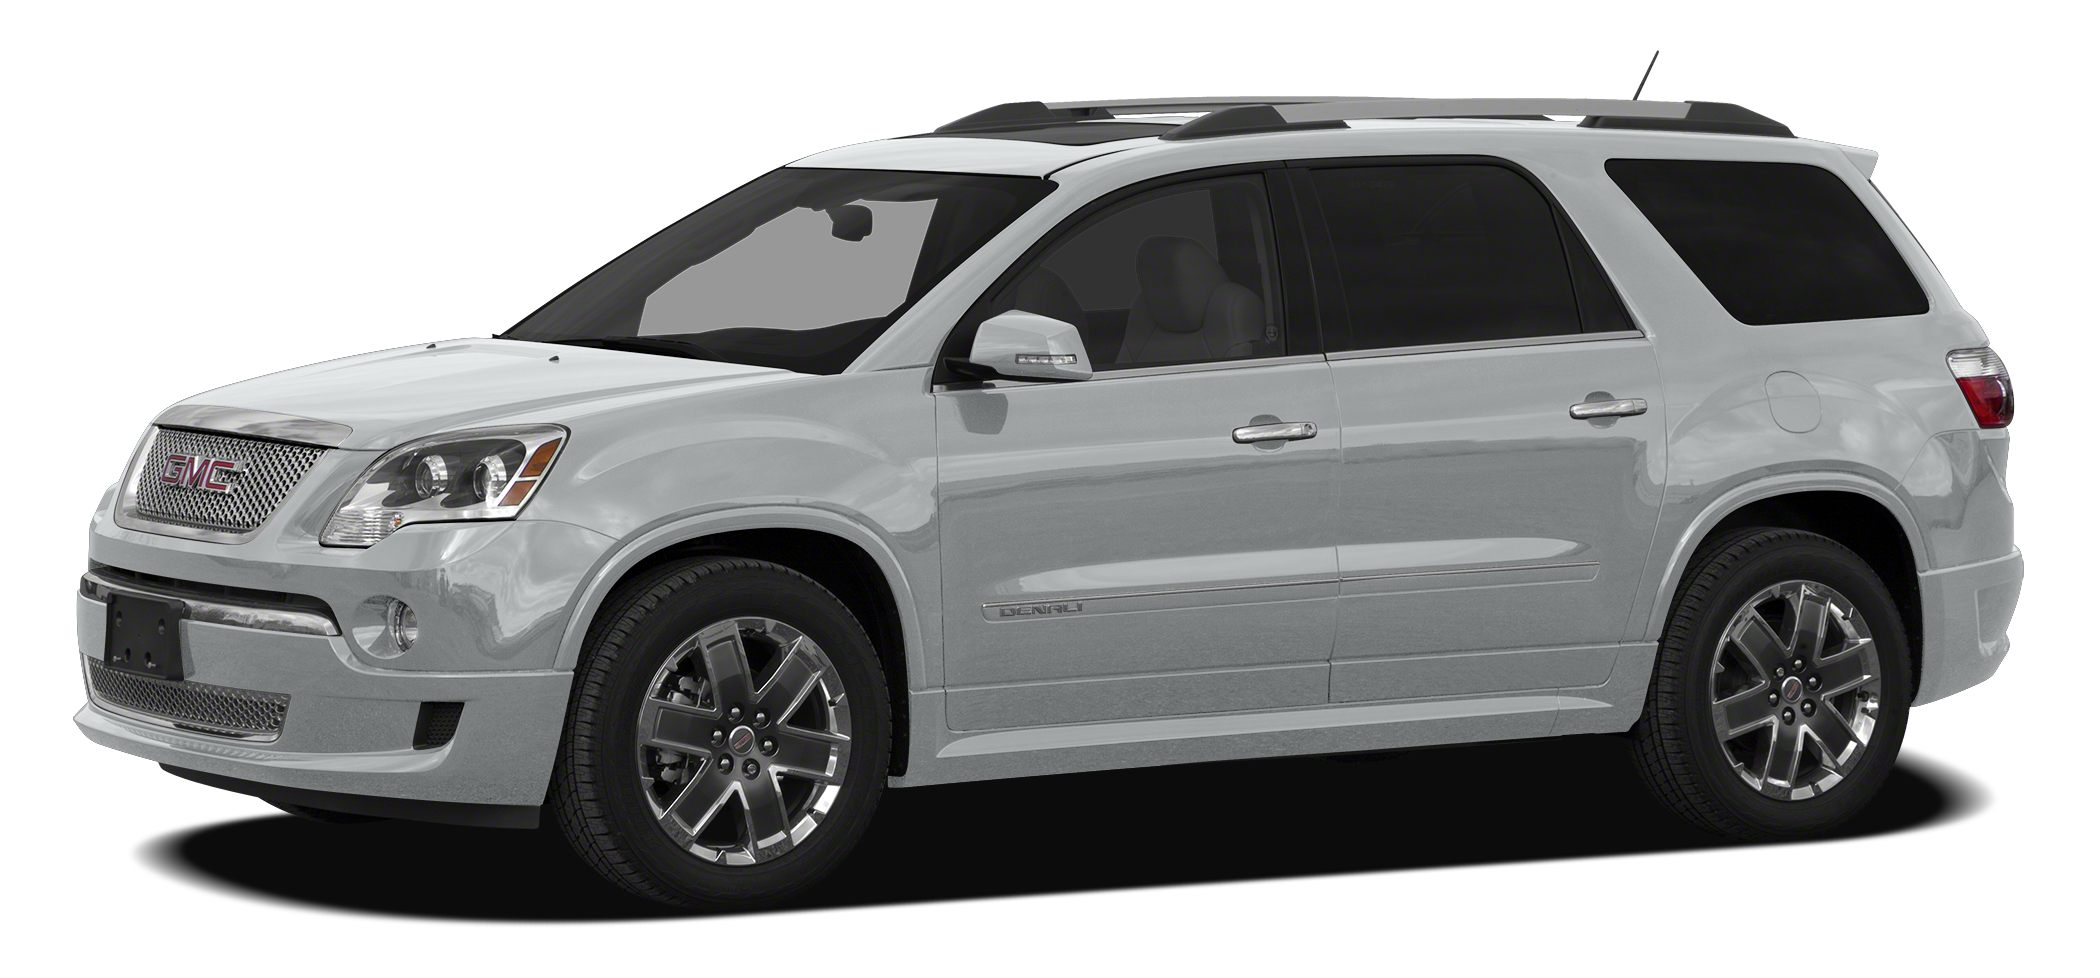 2012 GMC Acadia Denali DISCLAIMER We are excited to offer this vehicle to you but it is currently